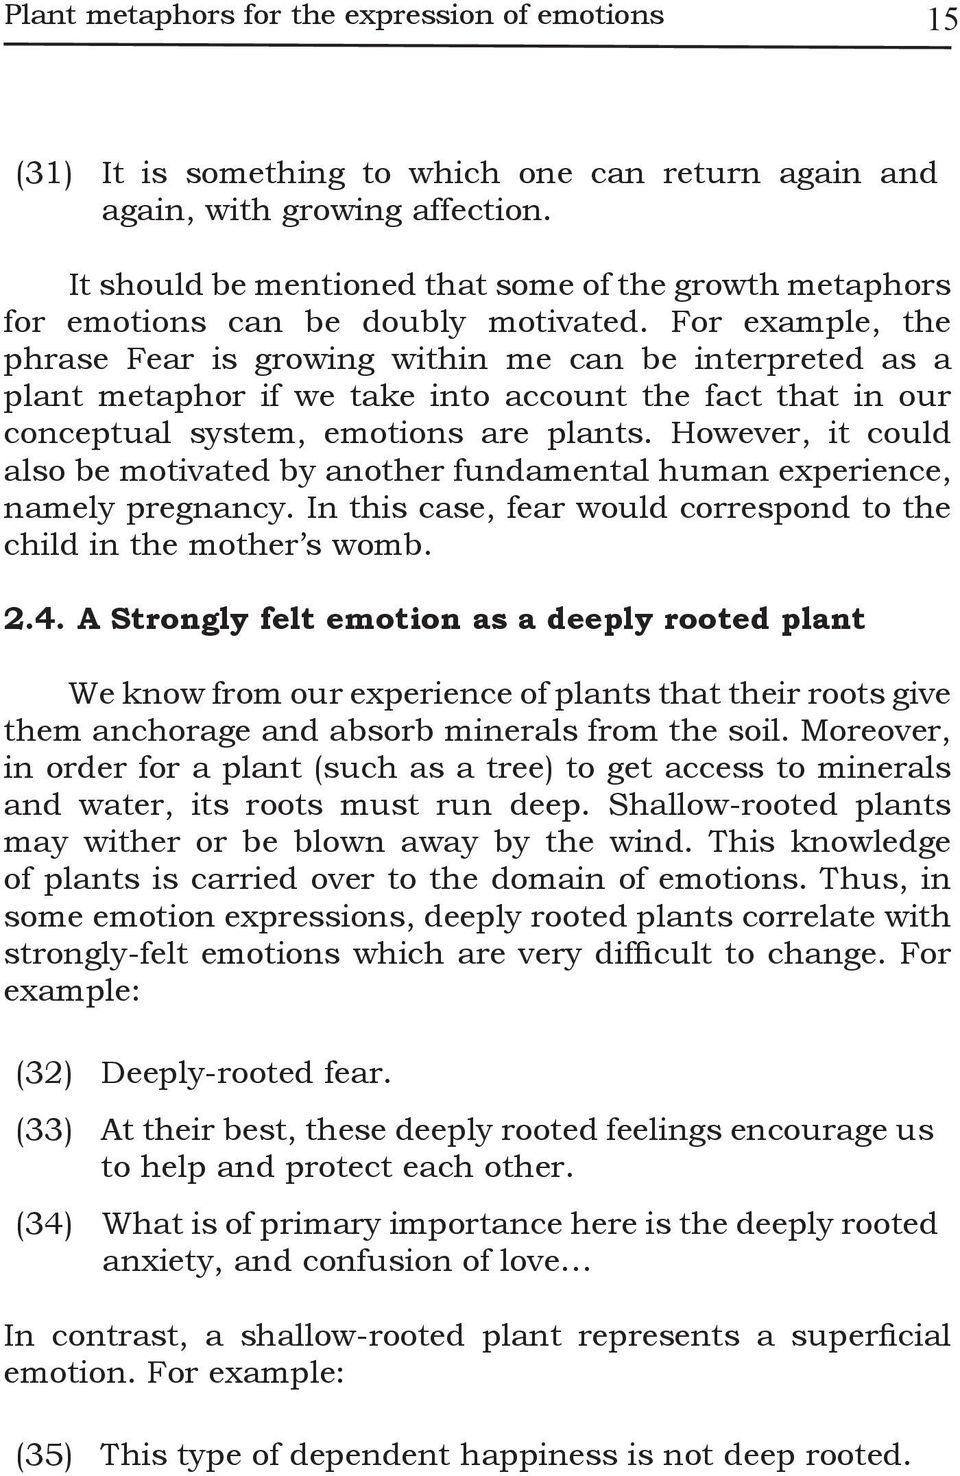 For example, the phrase Fear is growing within me can be interpreted as a plant metaphor if we take into account the fact that in our conceptual system, emotions are plants.